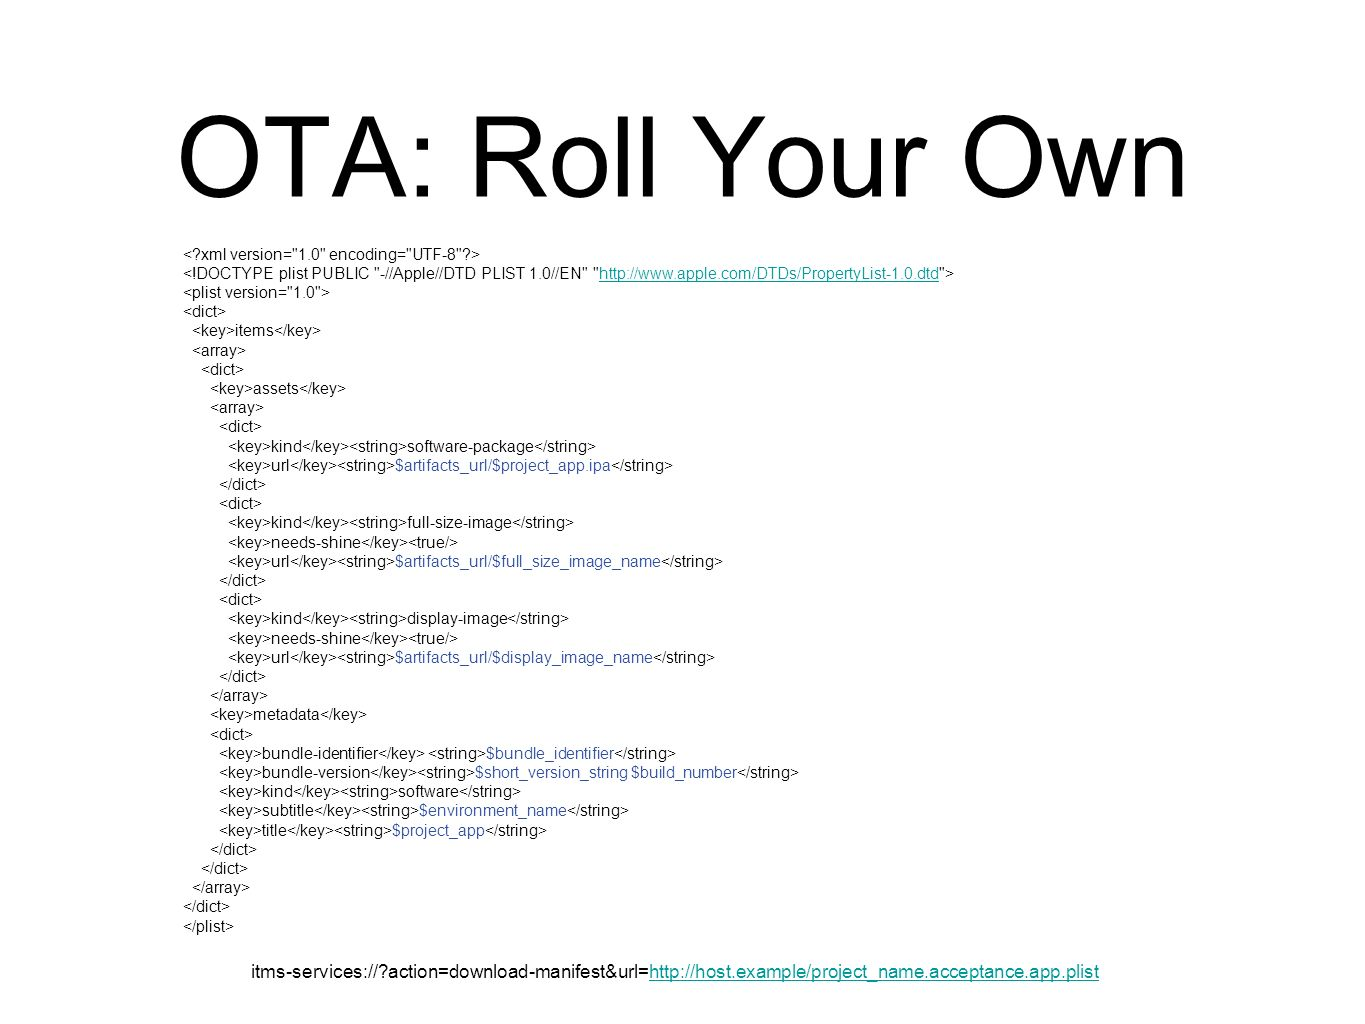 OTA: Roll Your Own   items assets kind software-package url $artifacts_url/$project_app.ipa kind full-size-image needs-shine url $artifacts_url/$full_size_image_name kind display-image needs-shine url $artifacts_url/$display_image_name metadata bundle-identifier $bundle_identifier bundle-version $short_version_string $build_number kind software subtitle $environment_name title $project_app itms-services:// action=download-manifest&url=